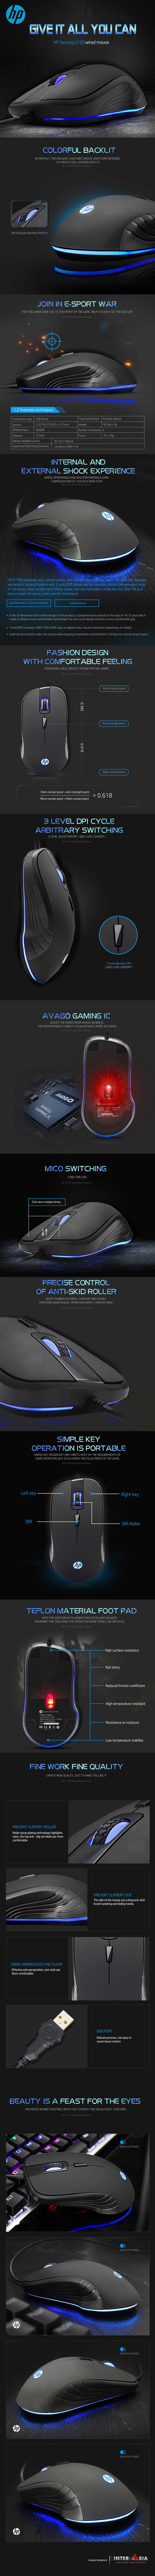 hp G100 optical gaming mouse